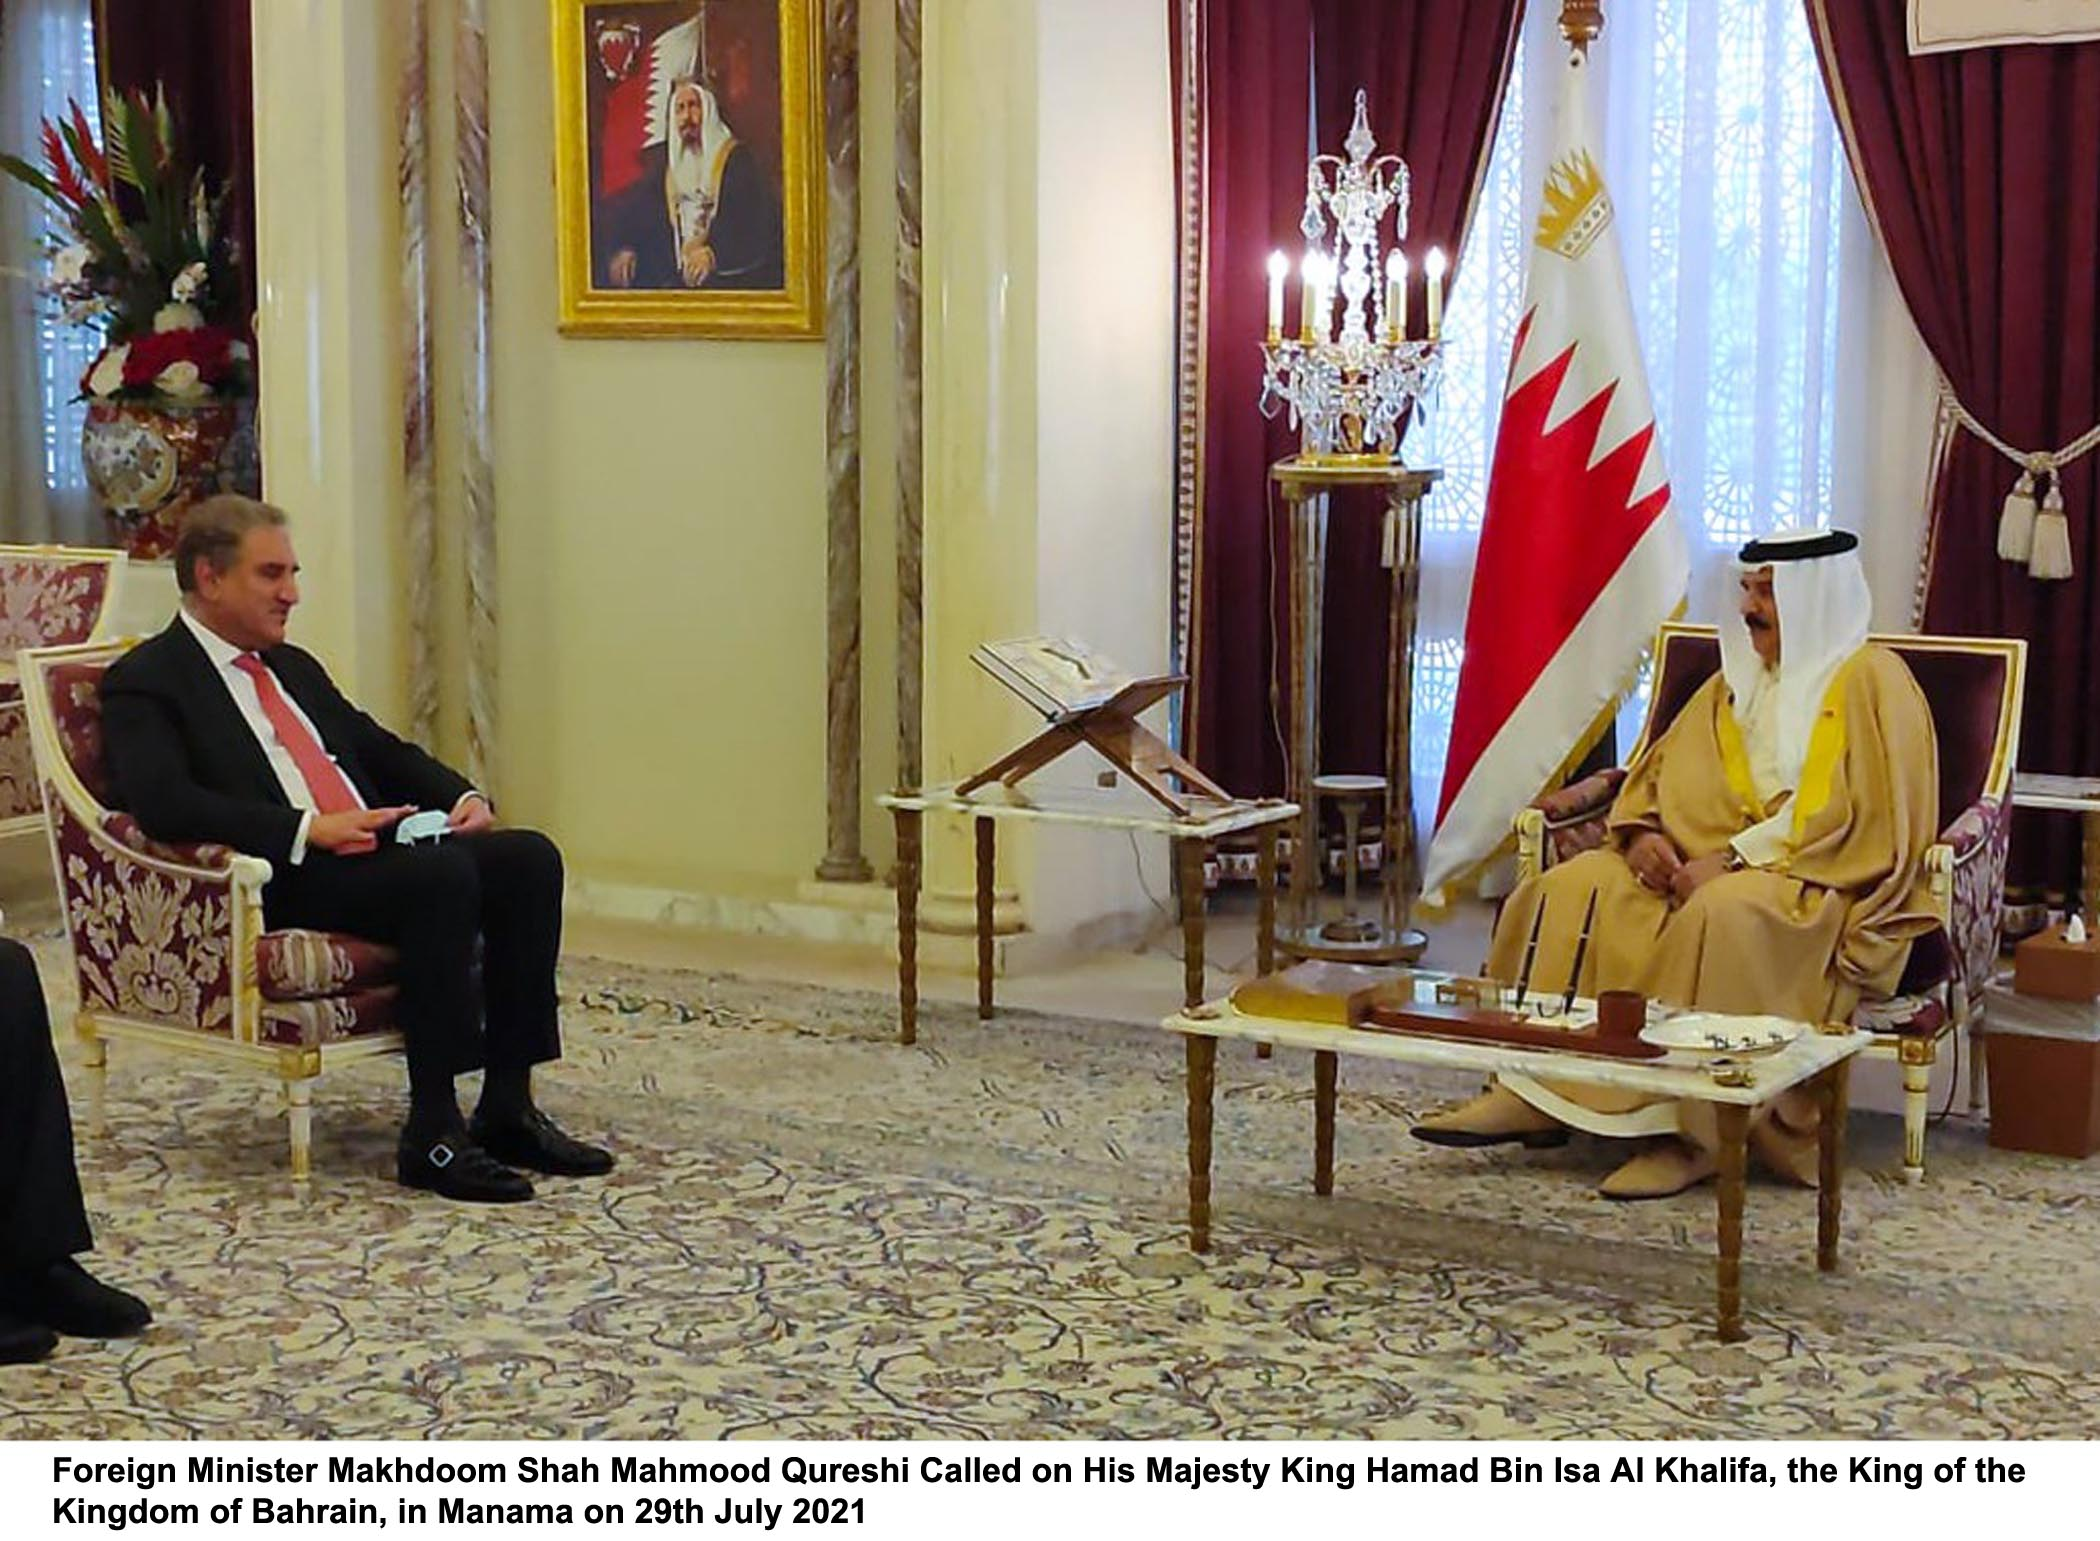 Pakistan attaches importance to its close ties with Bahrain: FM Qureshi